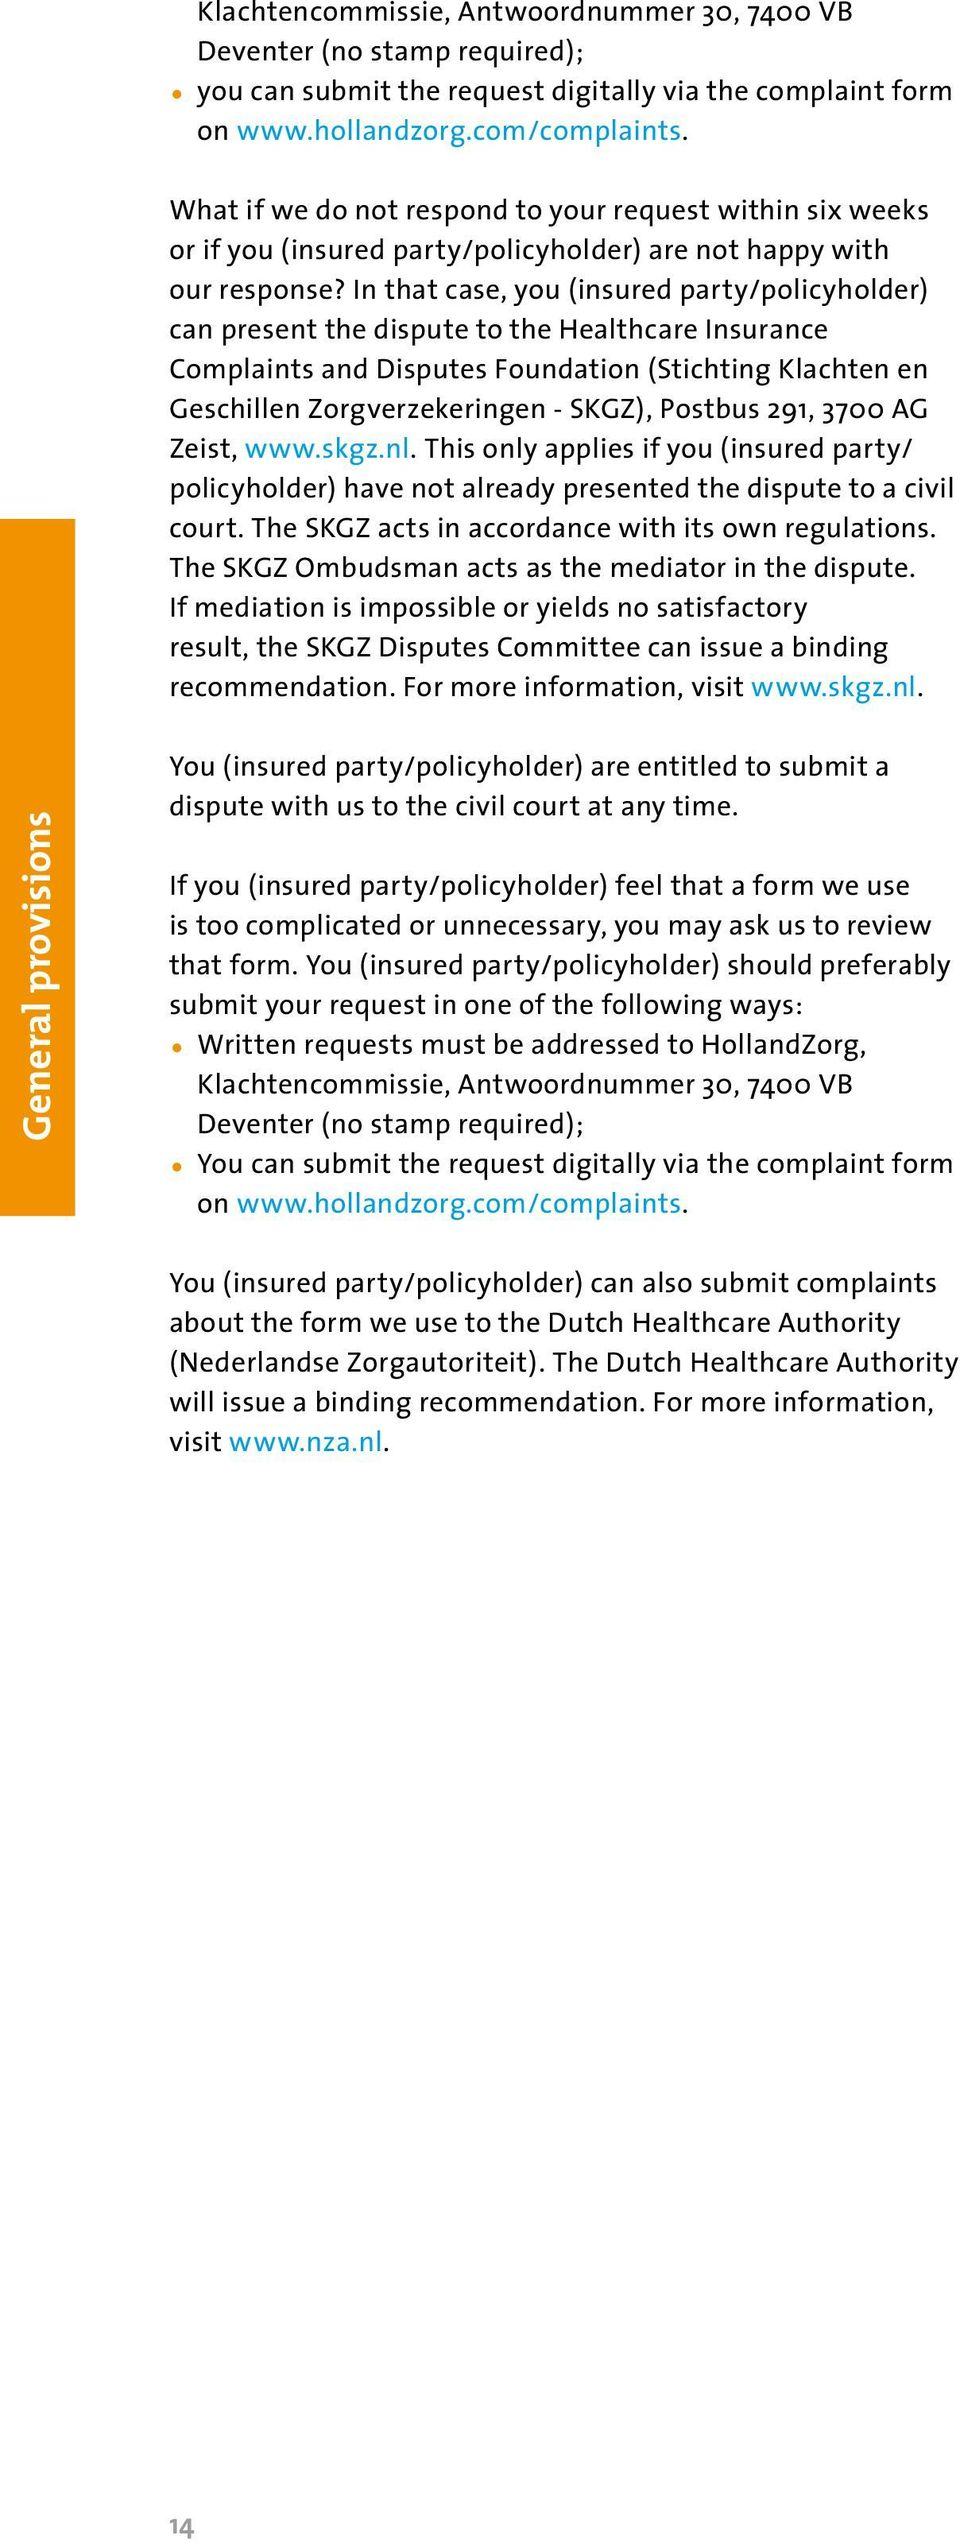 In that case, you (insured party/policyholder) can present the dispute to the Healthcare Insurance Complaints and Disputes Foundation (Stichting Klachten en Geschillen Zorgverzekeringen - SKGZ),